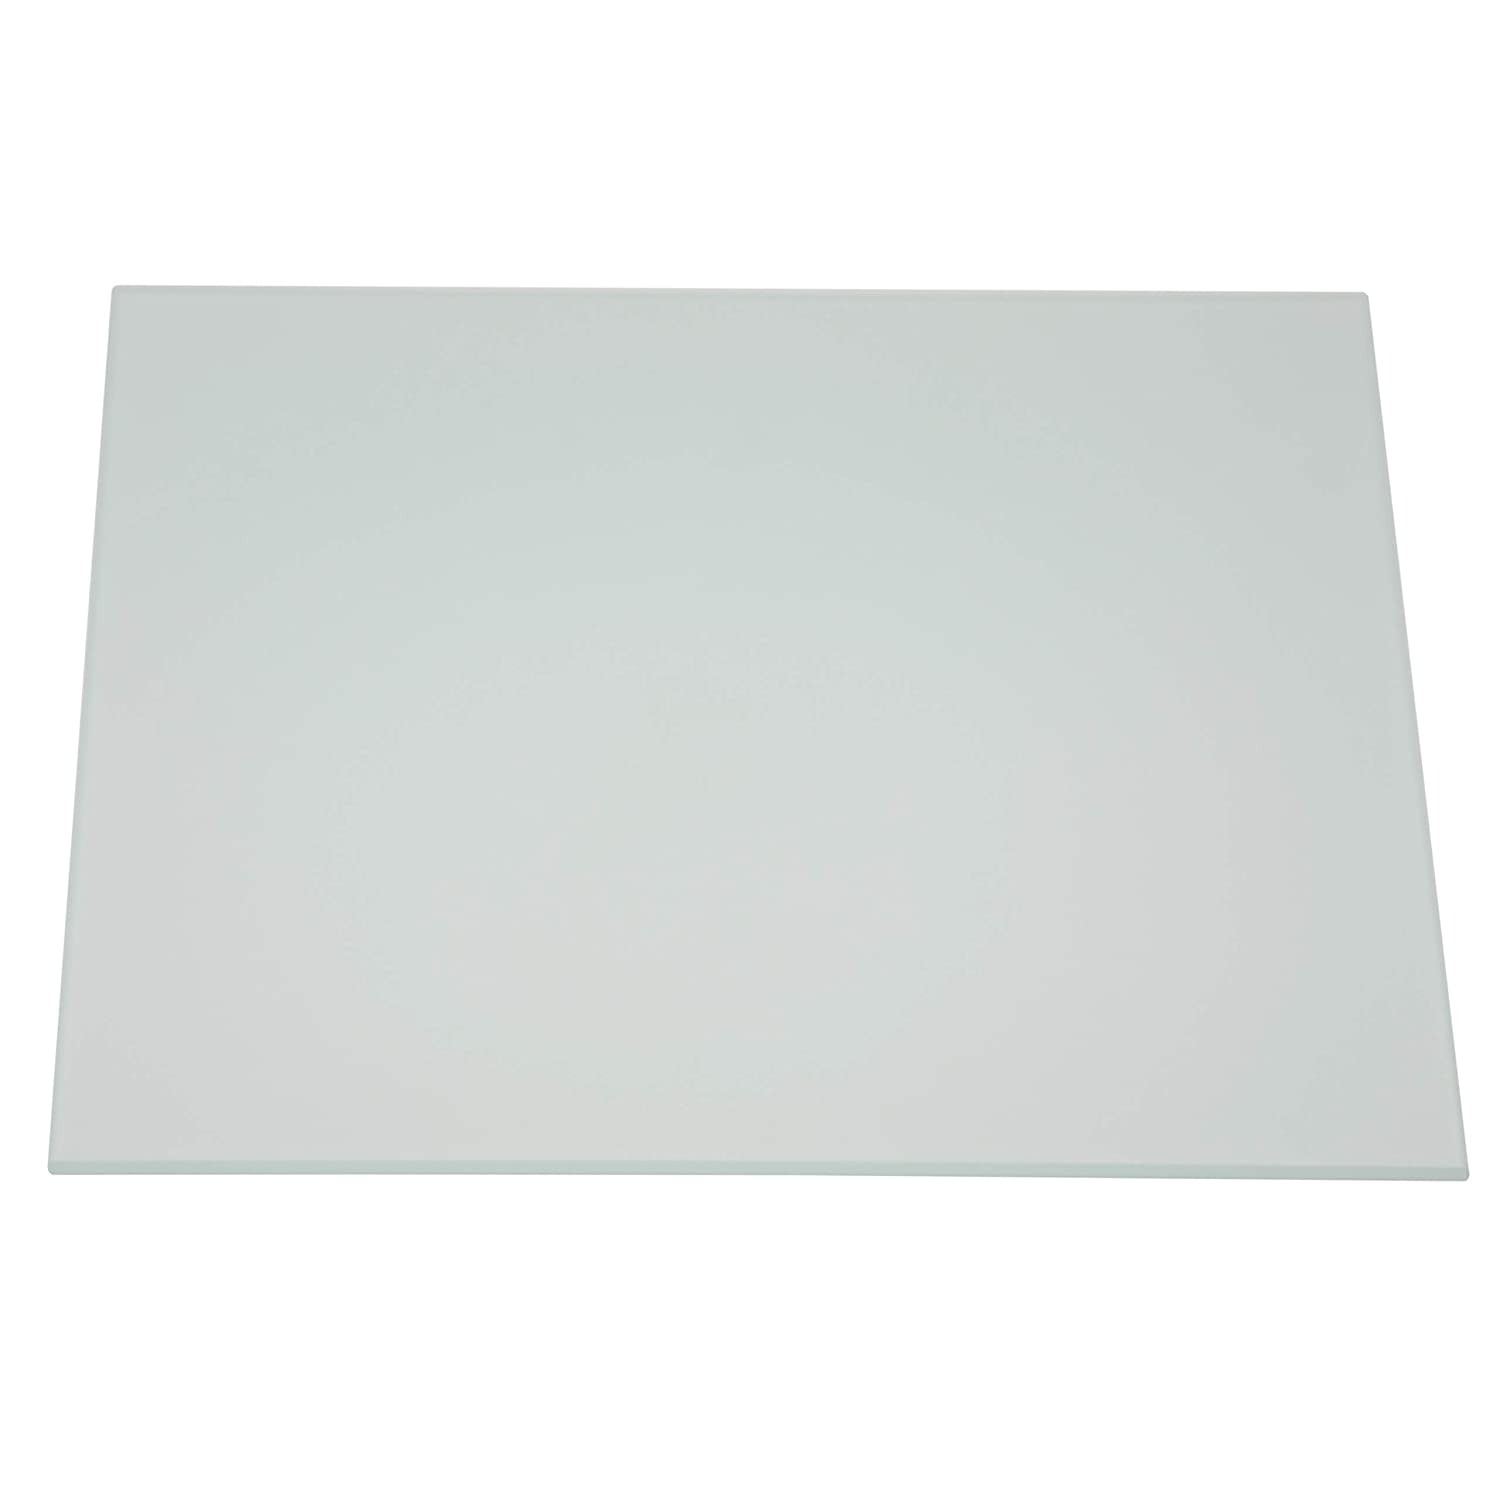 Reprap ReliaBot Strong Adhesion Tempered Borosilicate Glass Plate 214x214x3mm for Prusa i3 3D Printers MK2 MK3 Heated Bed ANET Mendel